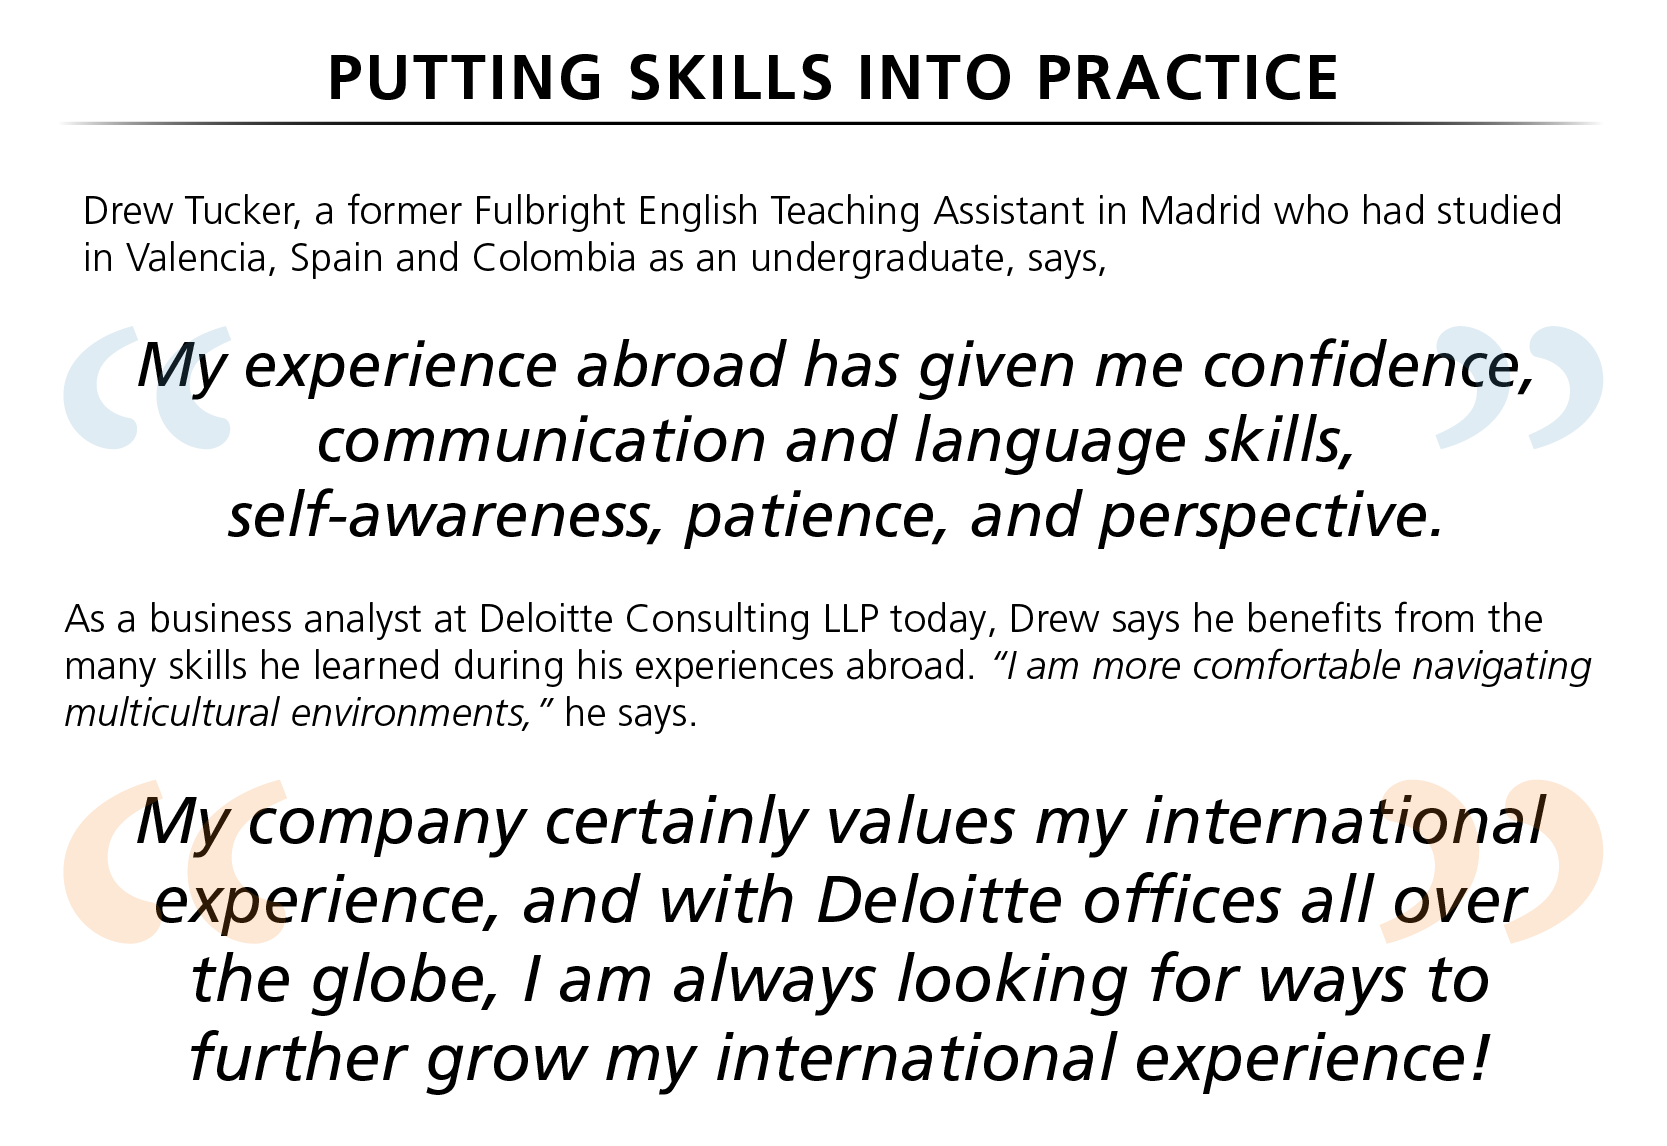 "Drew Tucker, a former Fulbright English Teaching Assistant in Madrid who had studied in Valencia, Spain and Colombia as an undergraduate, says, ""my experience abroad has given me confidence, communication and language skills, self-awareness, patience, and perspective."" As a business analyst at Deloitte Consulting LLP today, Drew says he benefits from the many skills he learned during his experiences abroad. ""I am more comfortable navigating multicultural environments,"" he says. ""My company certainly values my international experience, and with Deloitte offices all over the globe, I am always looking for ways to further grow my international experience!"""